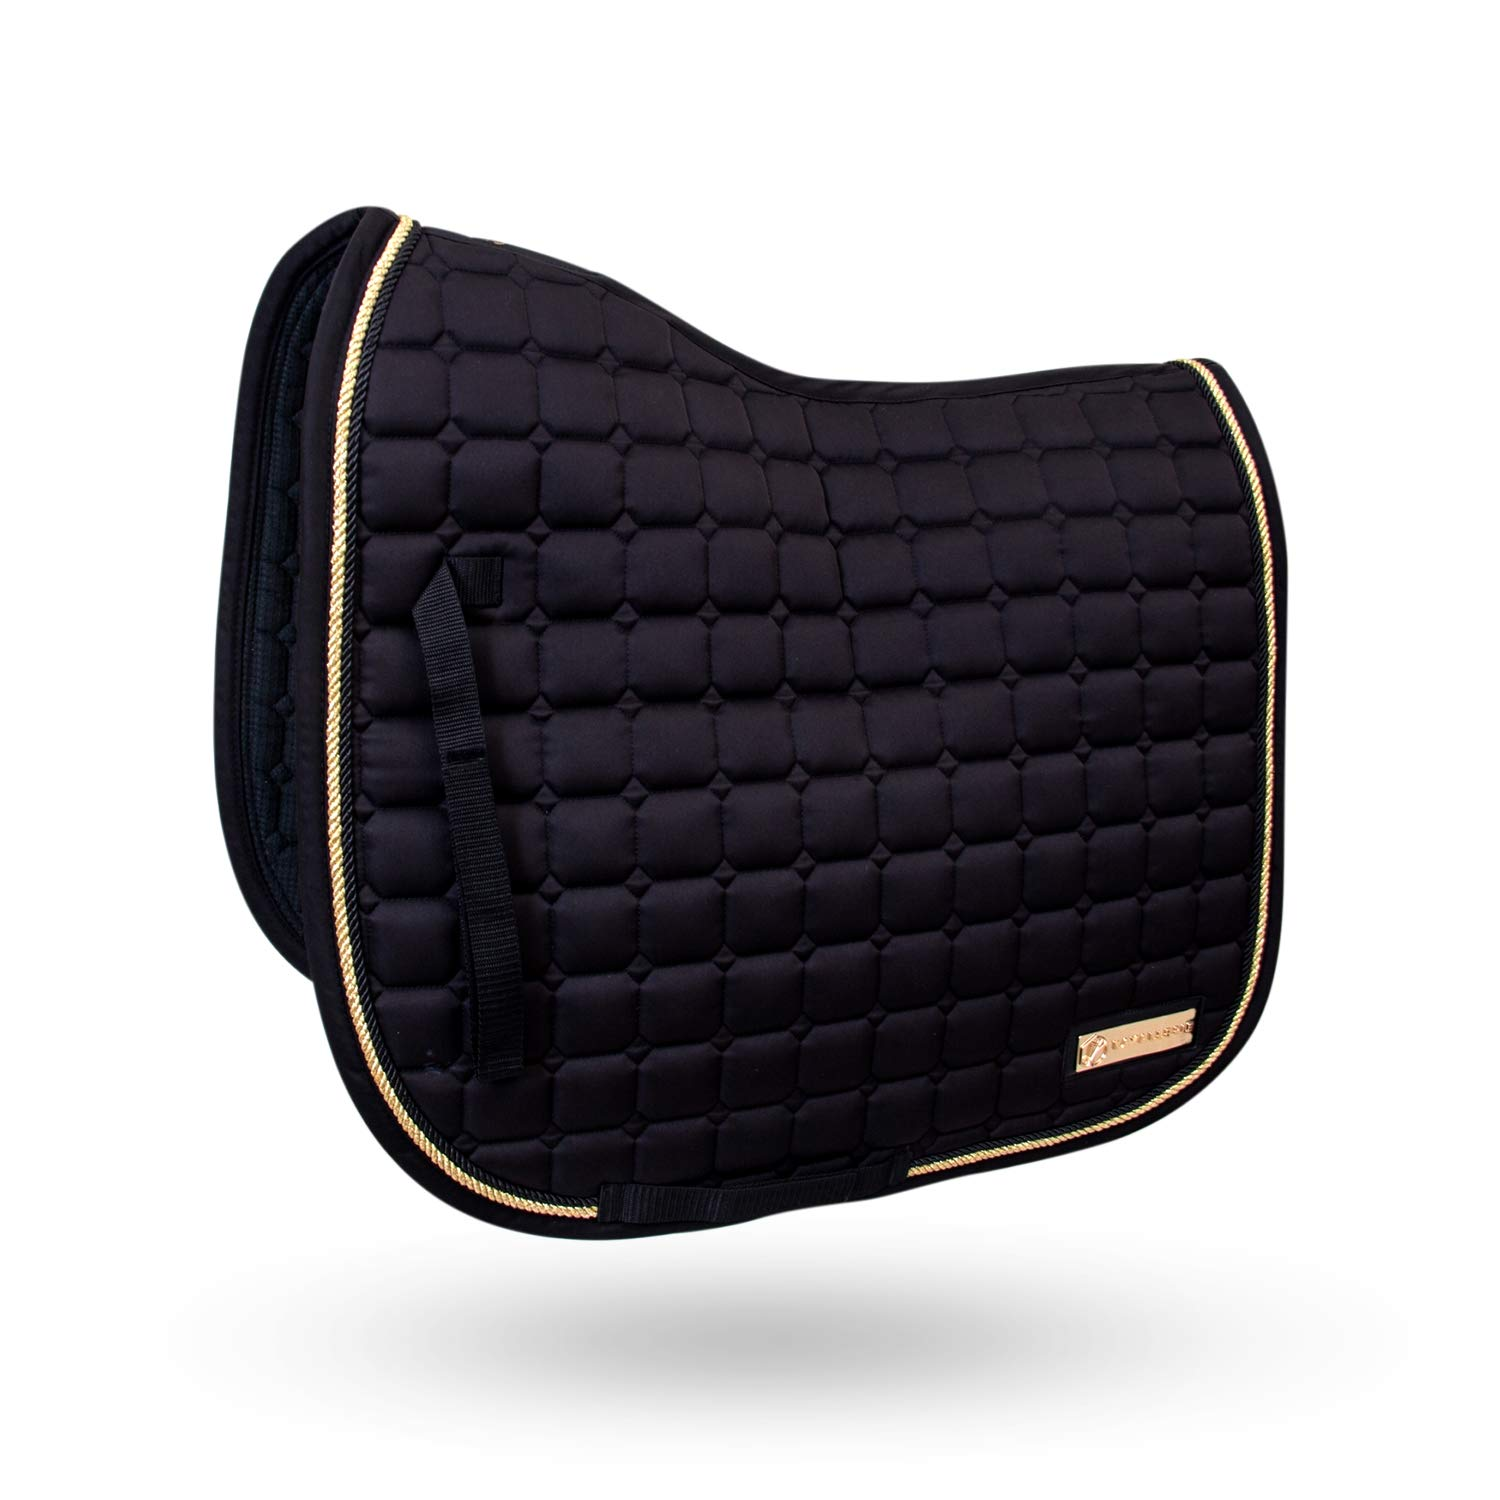 Kavallerie All-Purpose Saddle Pad with Quilted Anti-Slip Padding and Breathable Mesh Fabric for Maximum Airflow and Comfort, Works for English